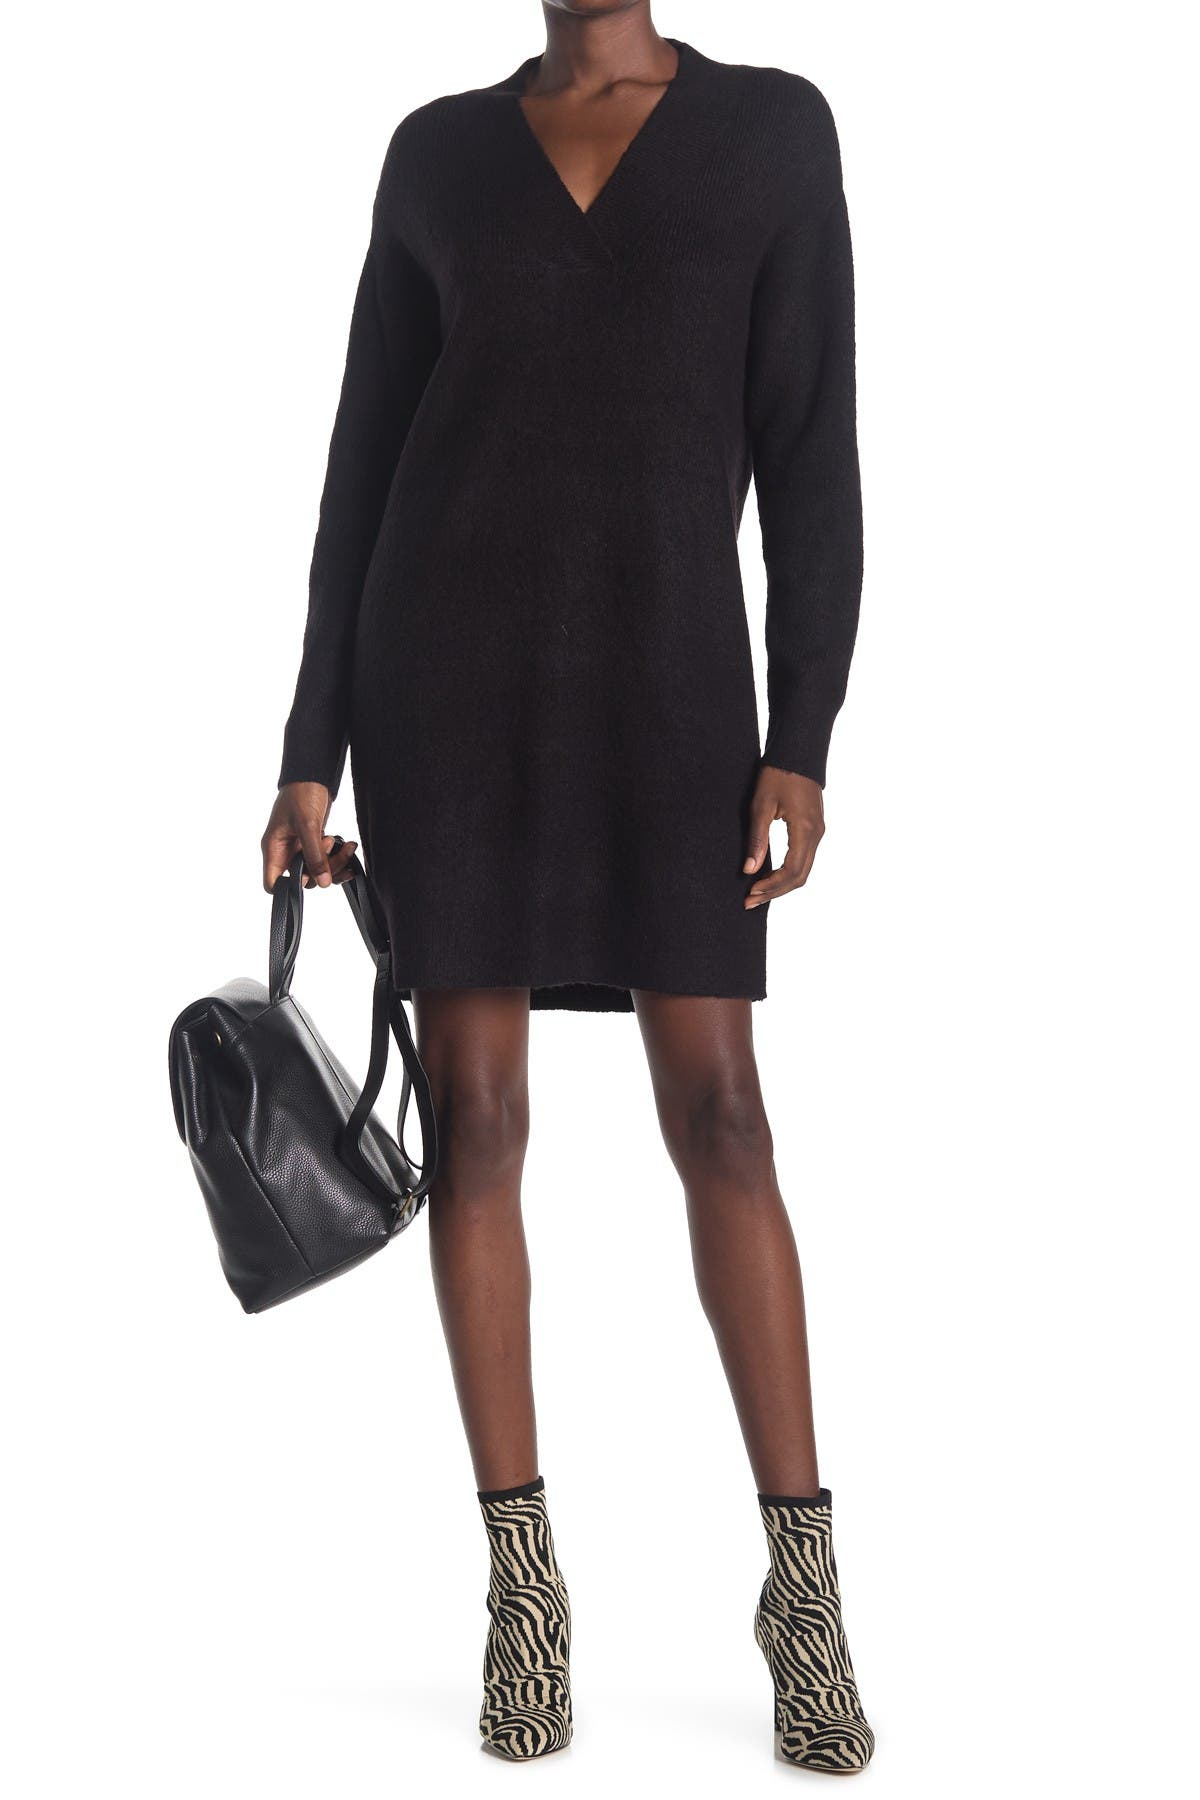 Image of Cloth By Design Mossy V-Neck Tunic Sweater Dress